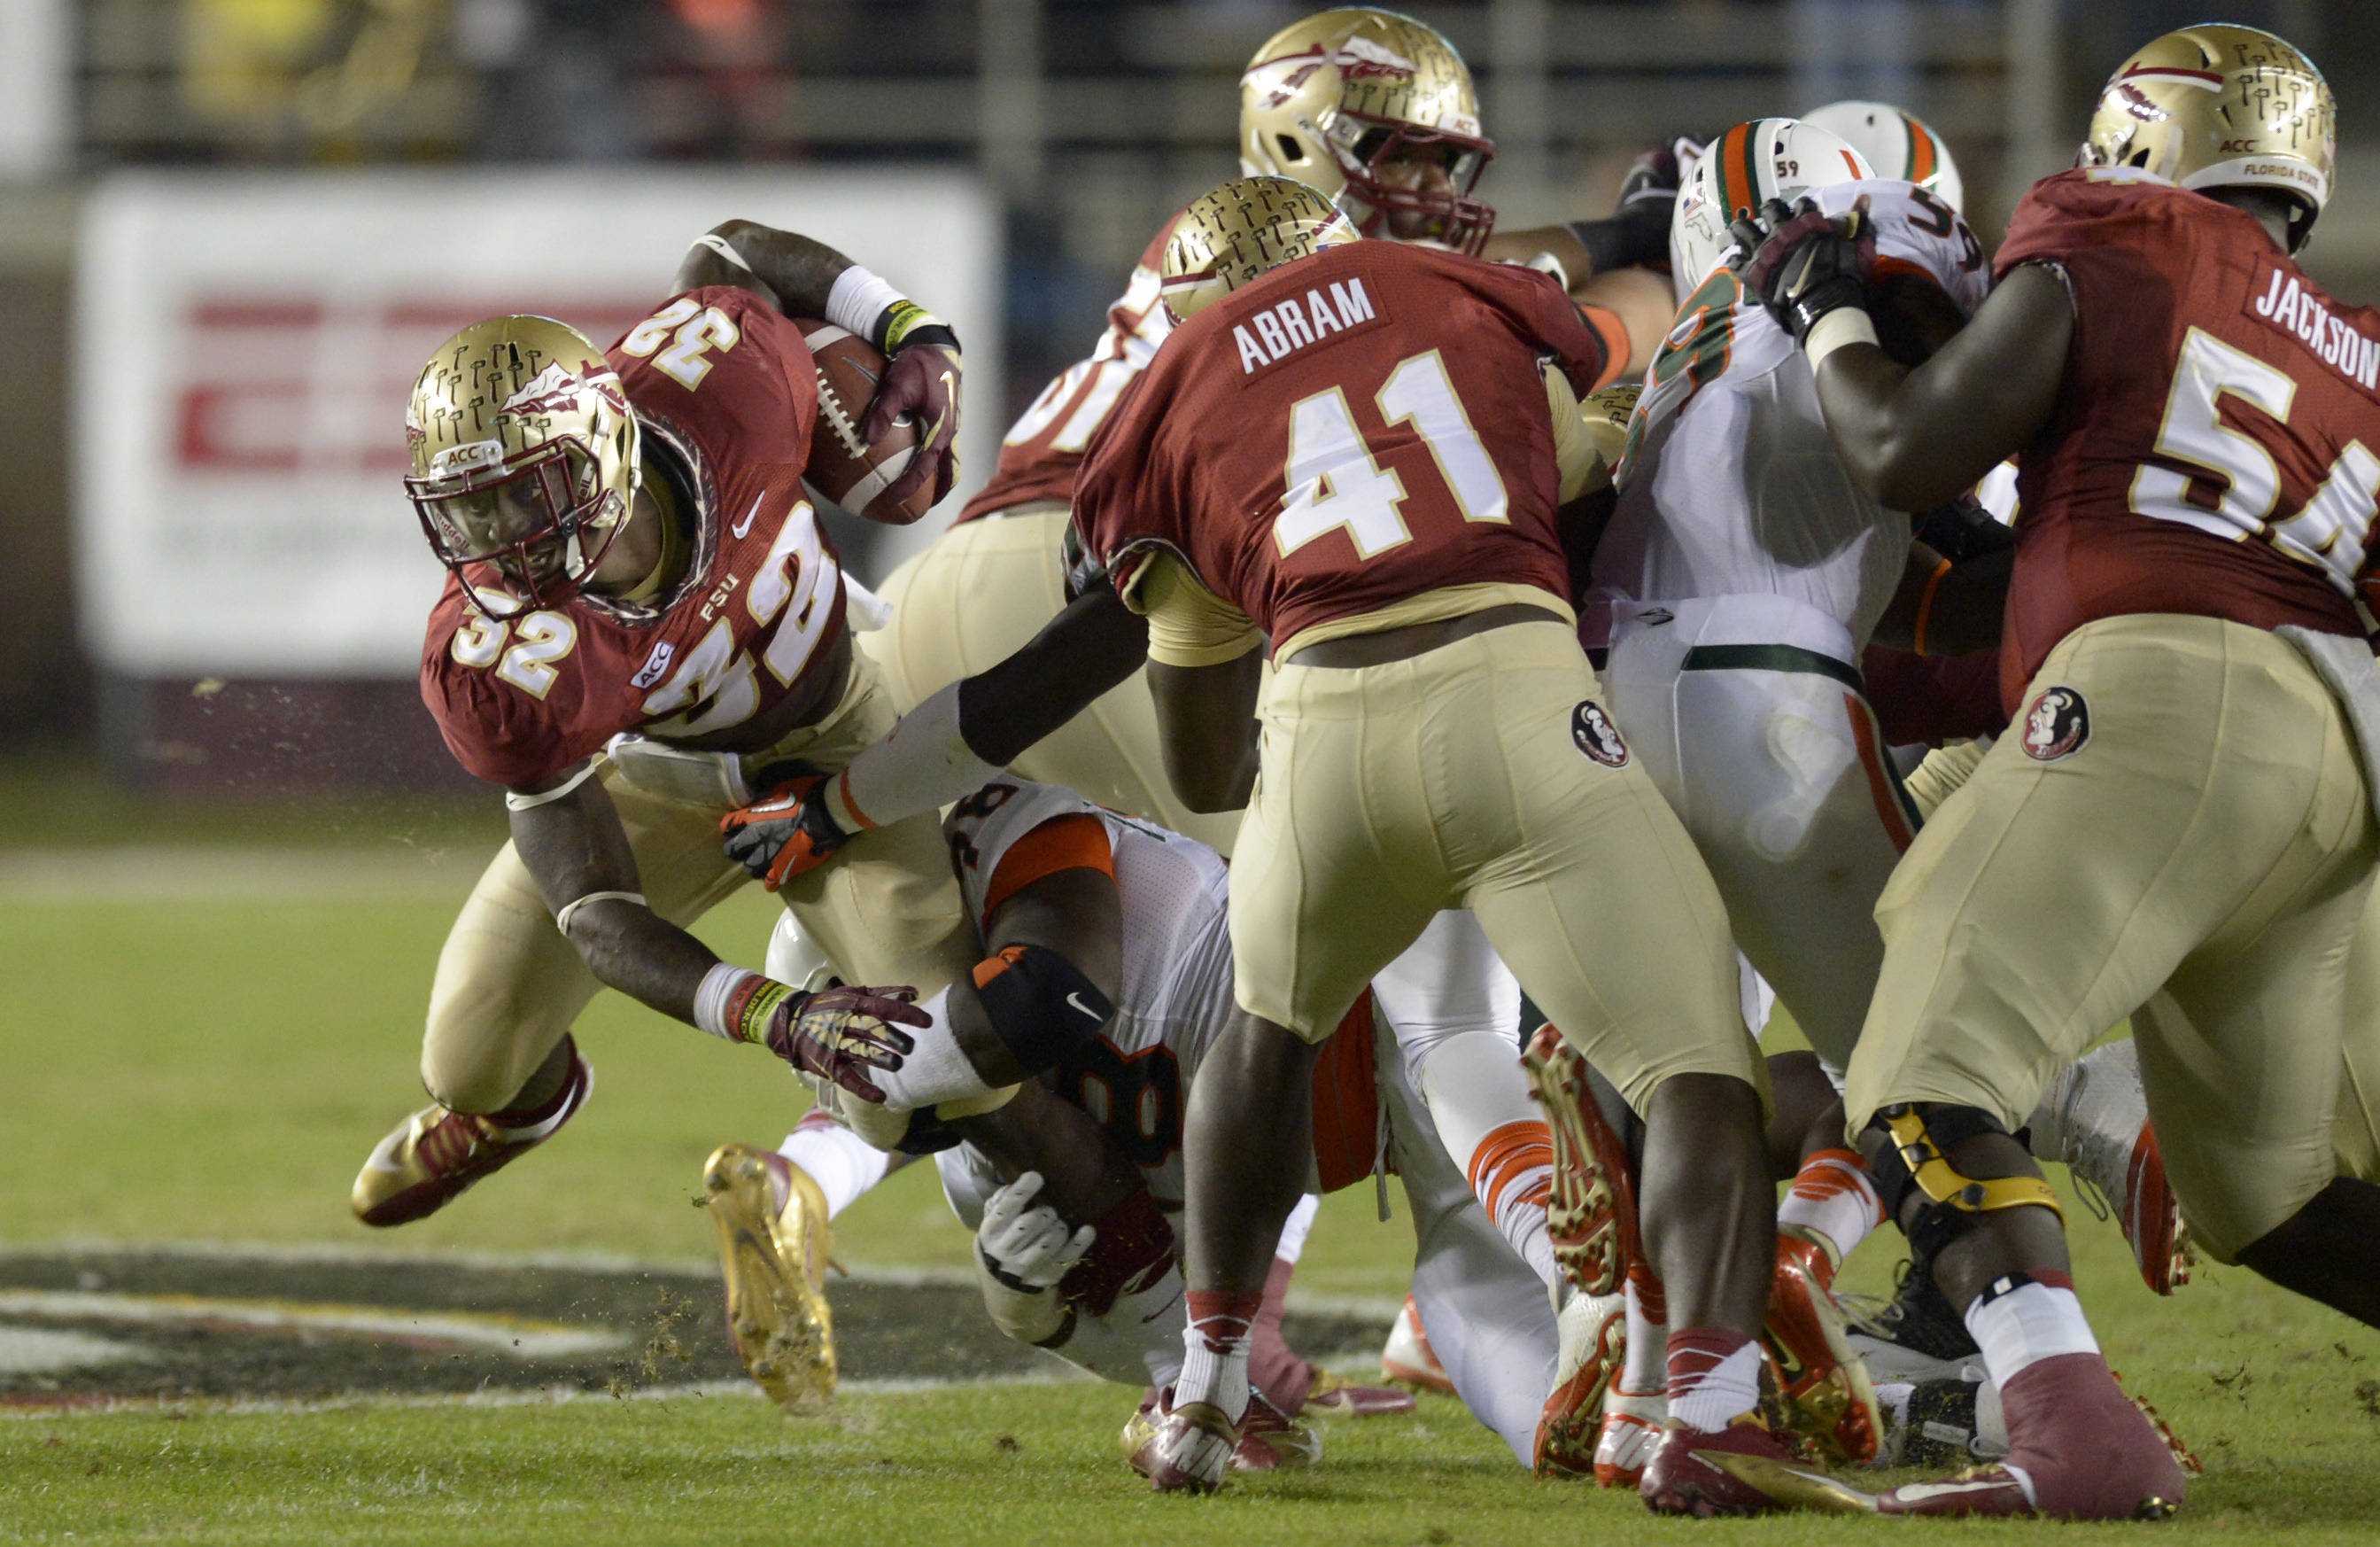 Florida State Seminoles running back James Wilder Jr. (32) carries the ball against the Miami Hurricanes during the first quarter at Doak Campbell Stadium. Mandatory Credit: John David Mercer-USA TODAY Sports